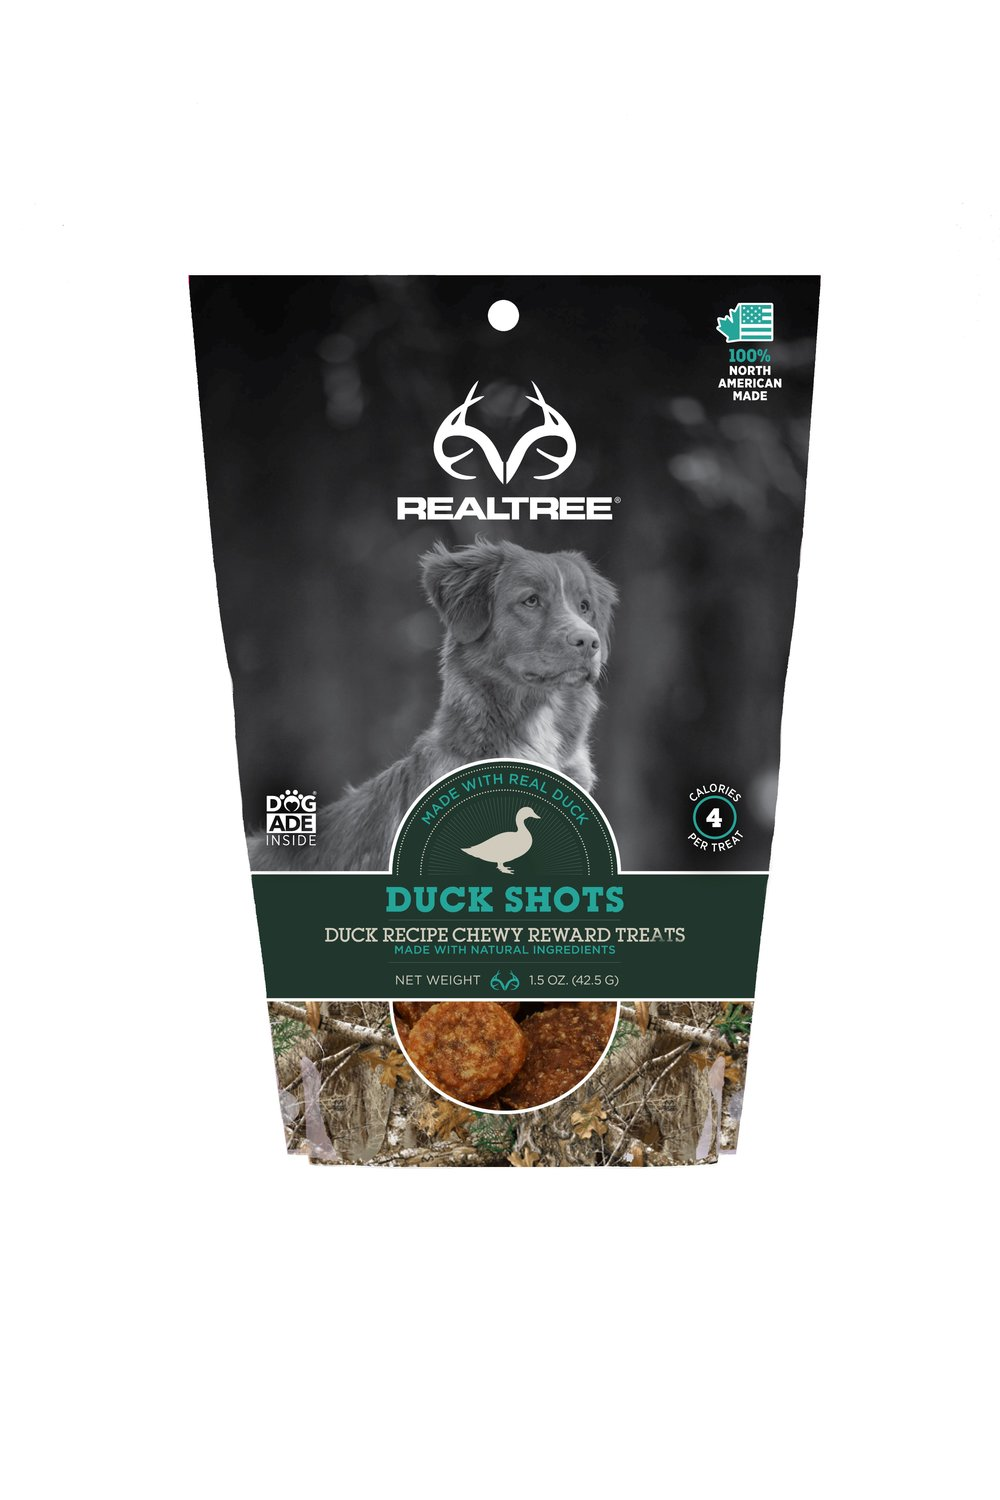 dog ade inside - Simple ingredients with a variety of health benefits for your dog